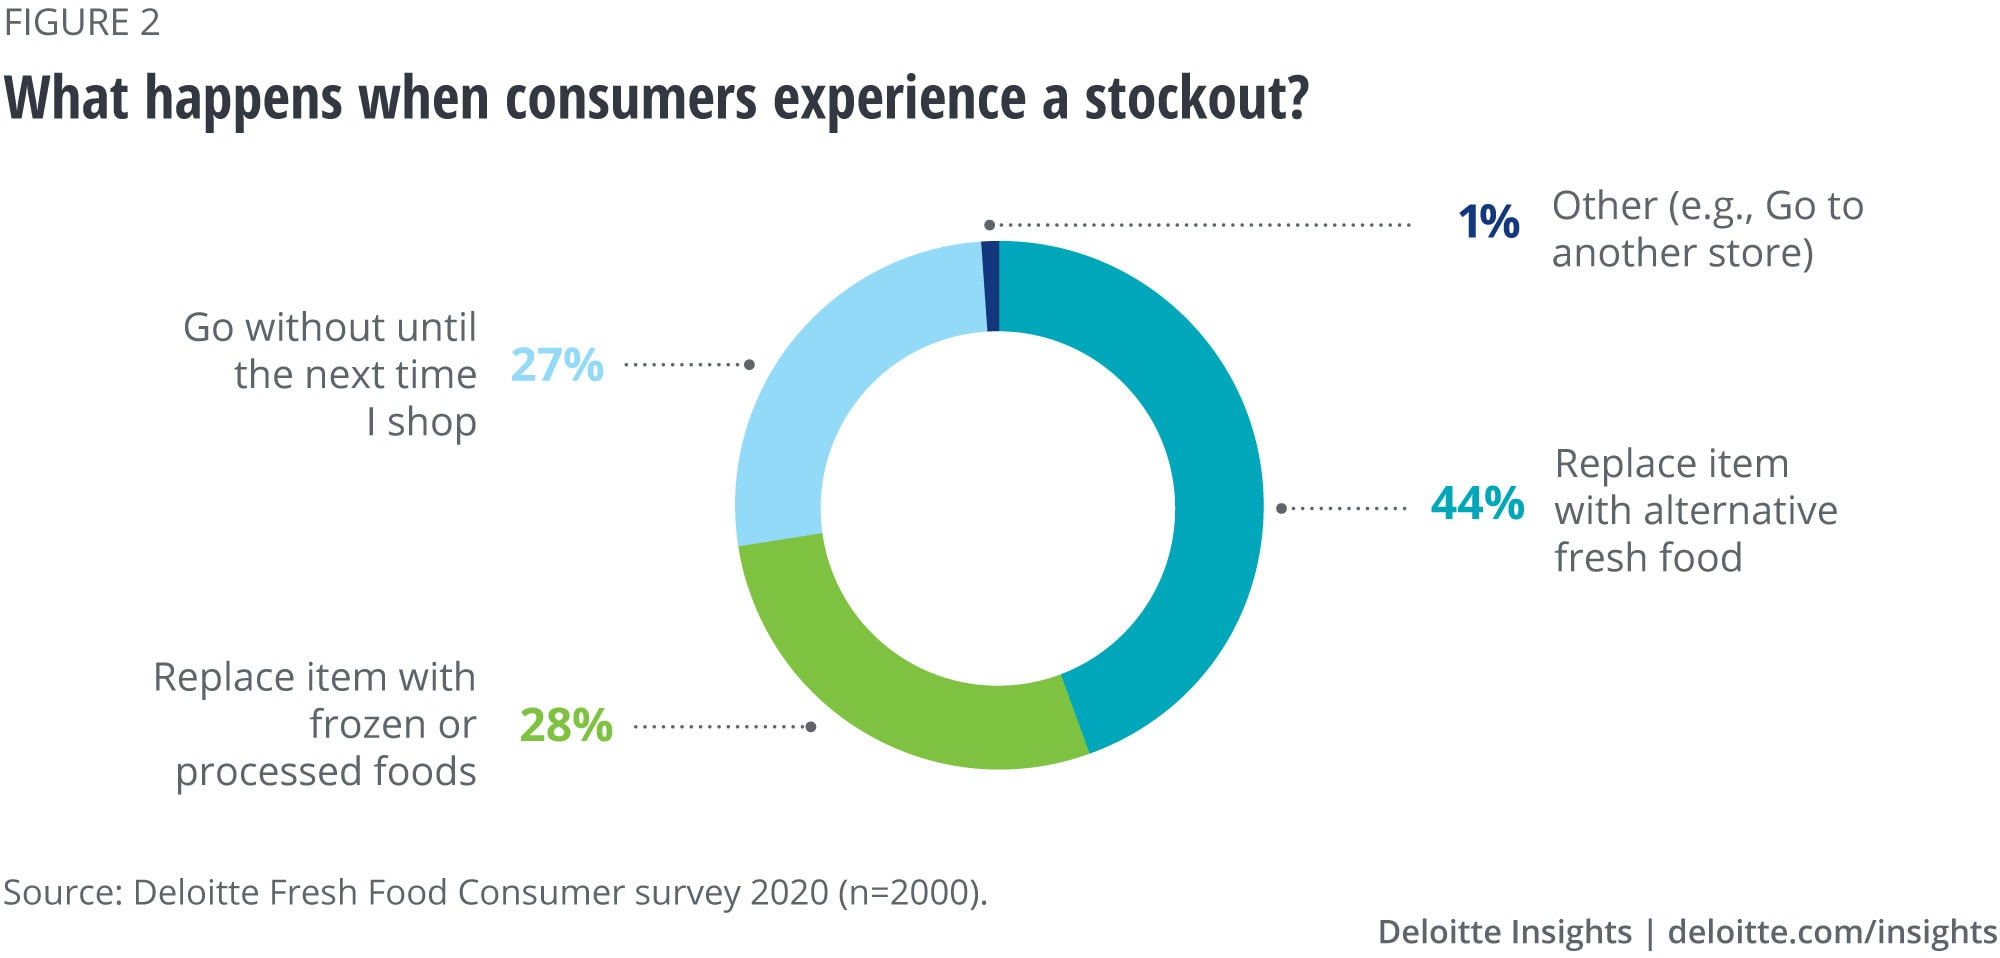 What happens when consumers do experience a stockout?